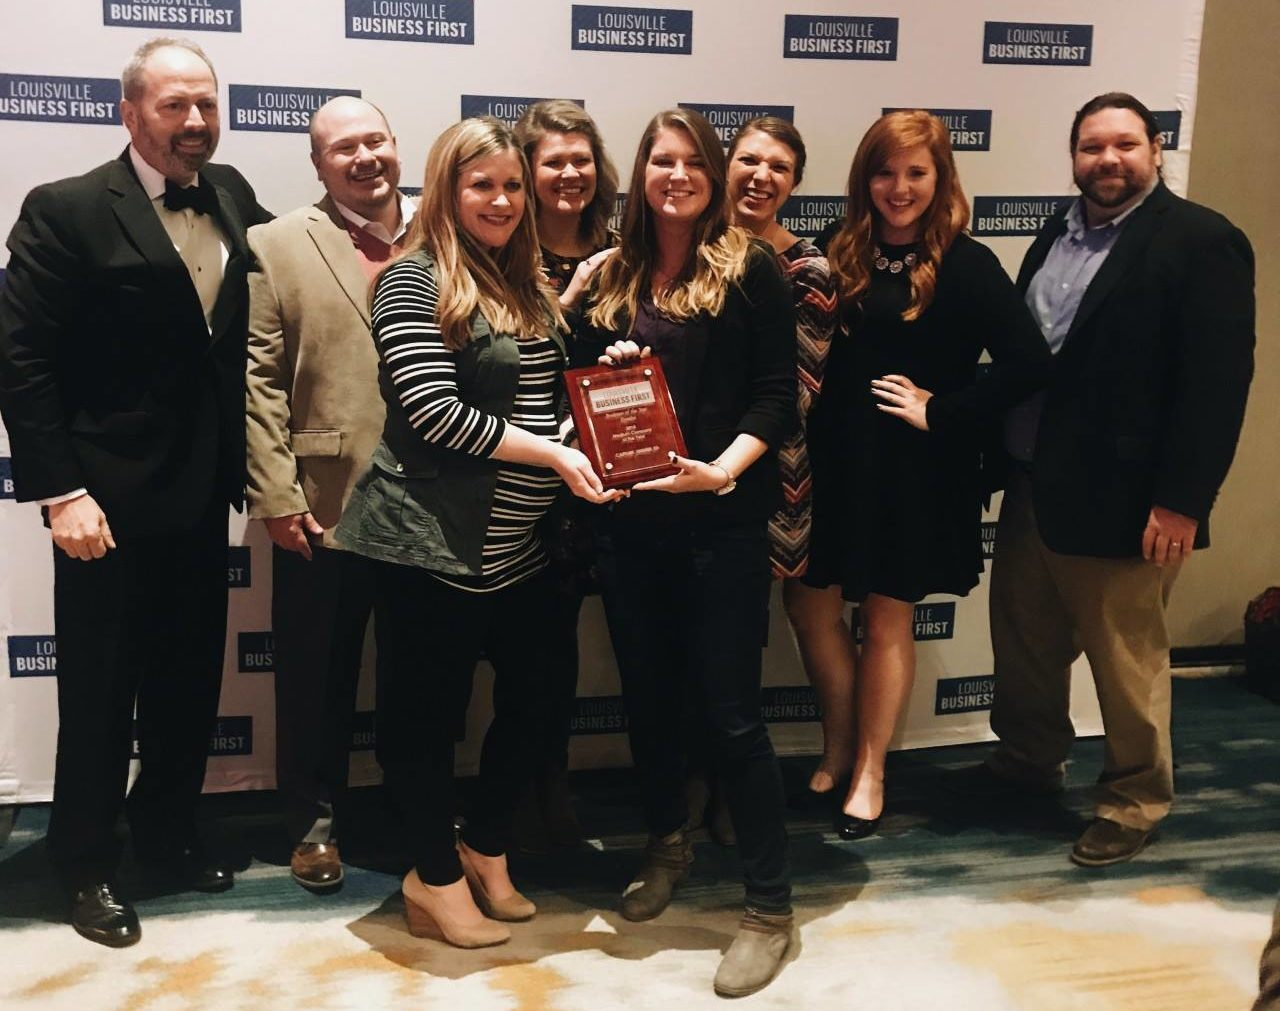 capture at Louisville Business First Award